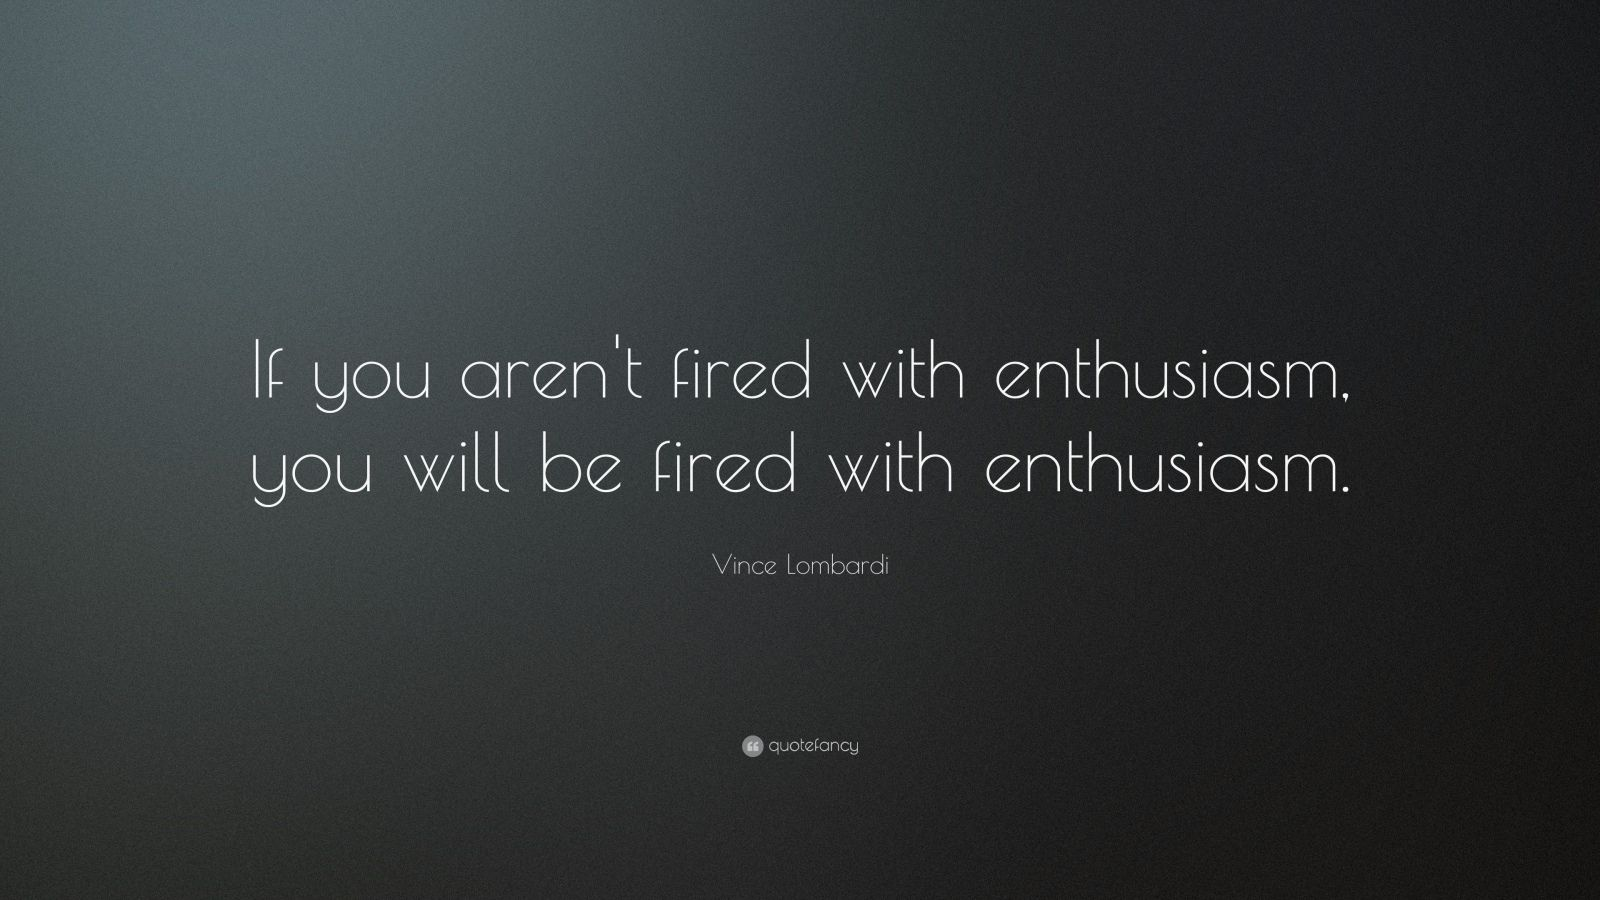 """Vince Lombardi Quote: """"If you aren't fired with enthusiasm, you will be fired with enthusiasm.    """""""